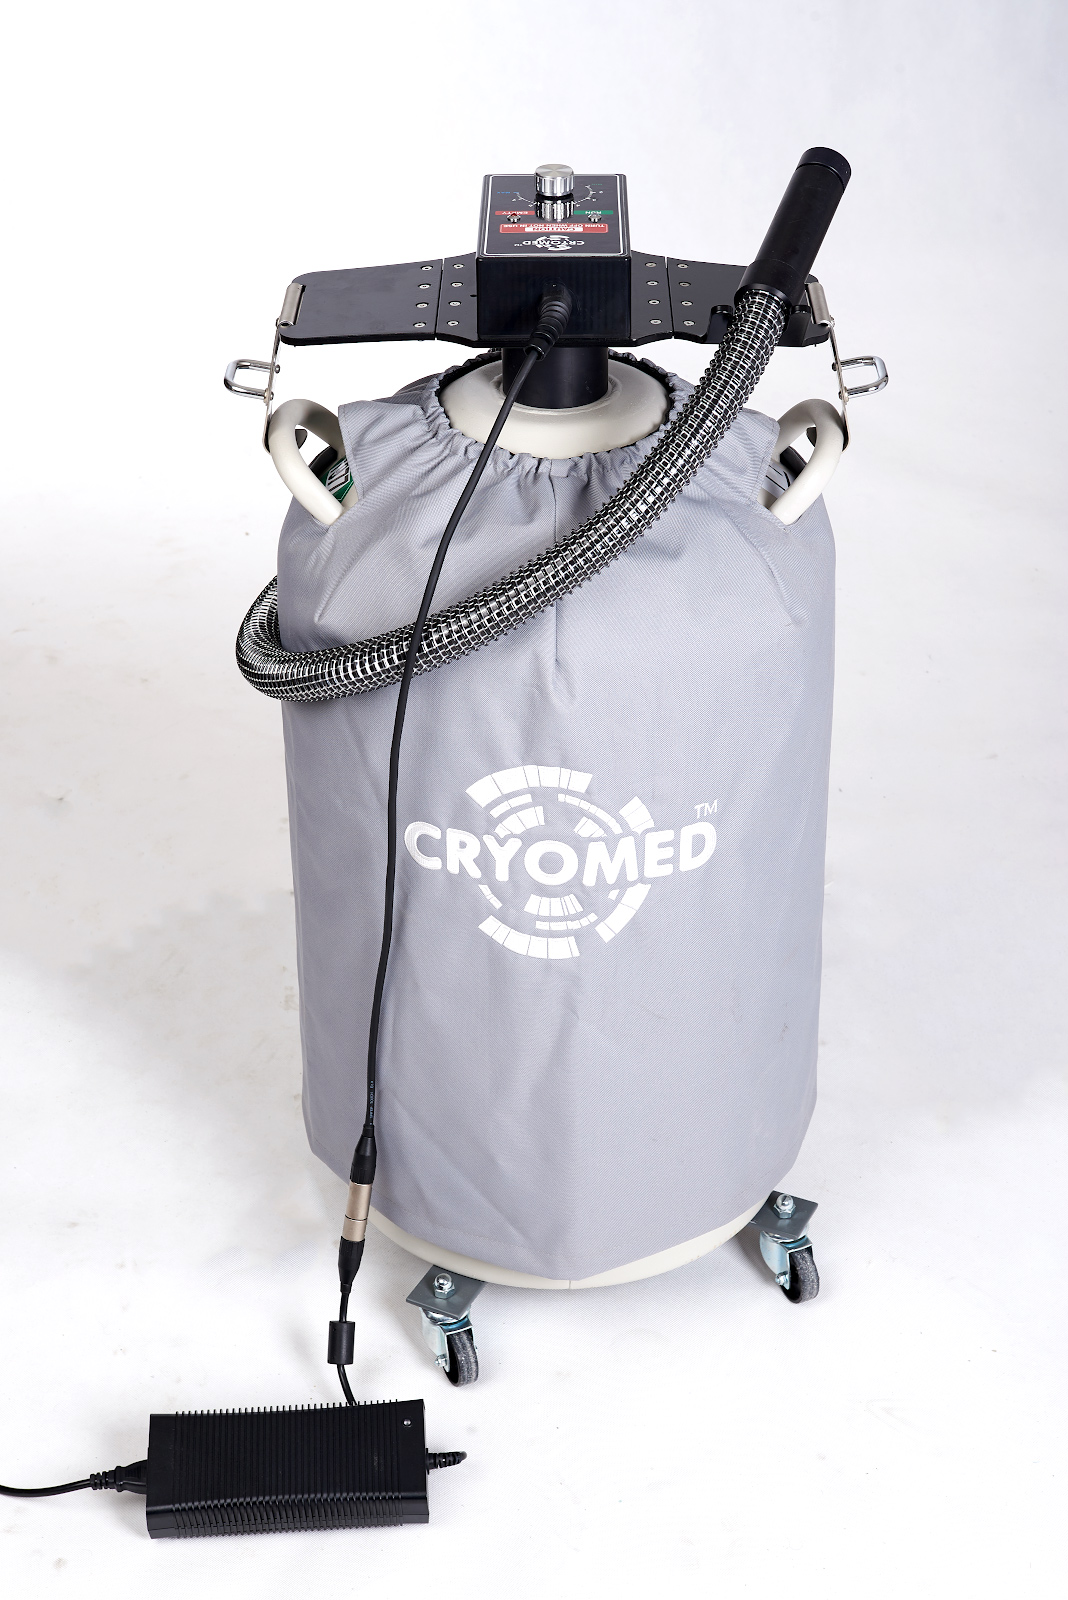 Cryofan CF-04+ is a local cryo machine for medical and health facilities